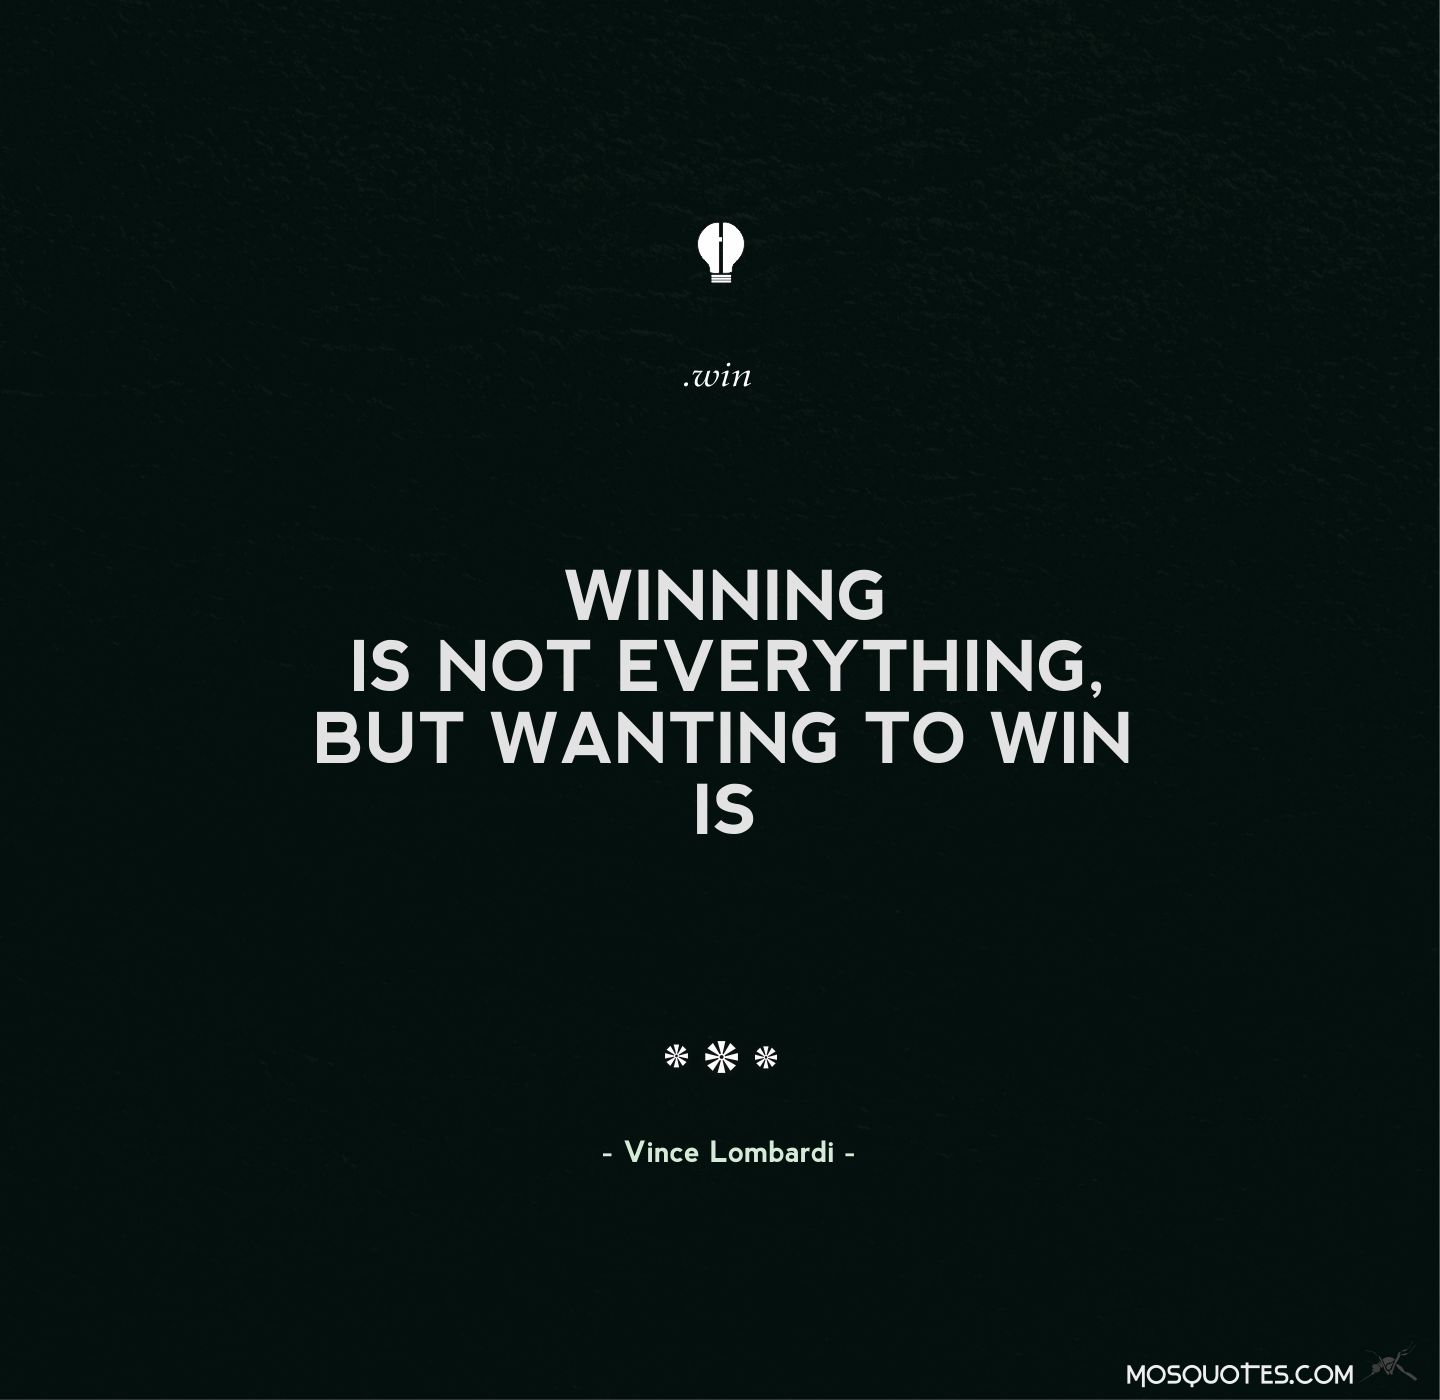 Motivational Quotes For Sports Teams: Motivational Quotes About Winning. QuotesGram